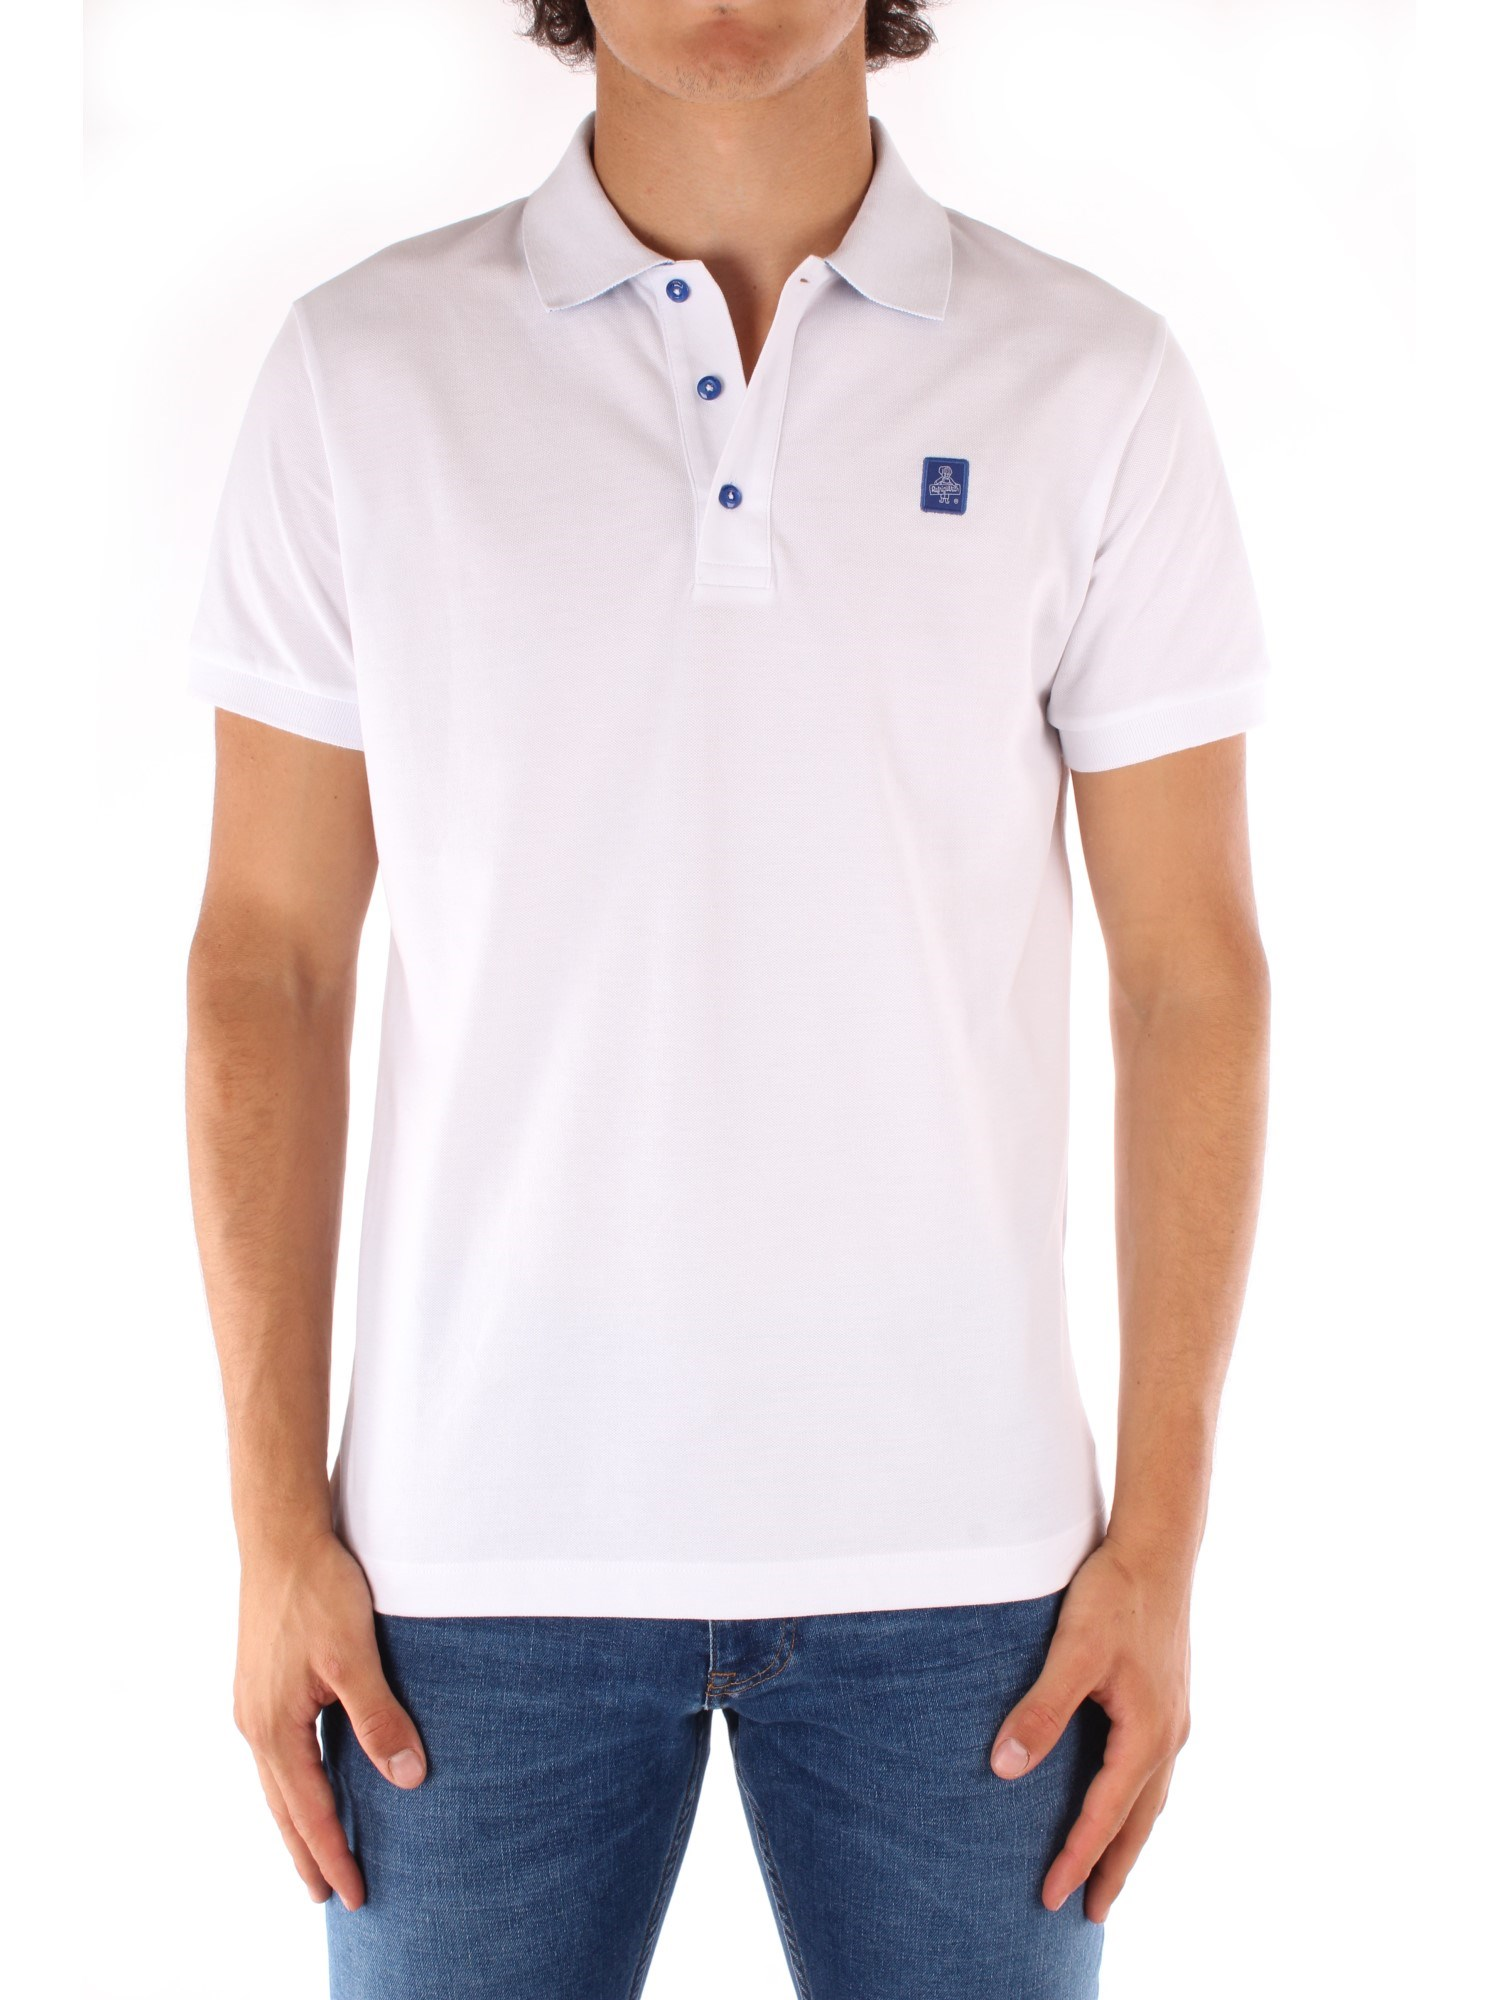 Refrigiwear Clothing Man Short sleeves WHITE PX9032-T19001